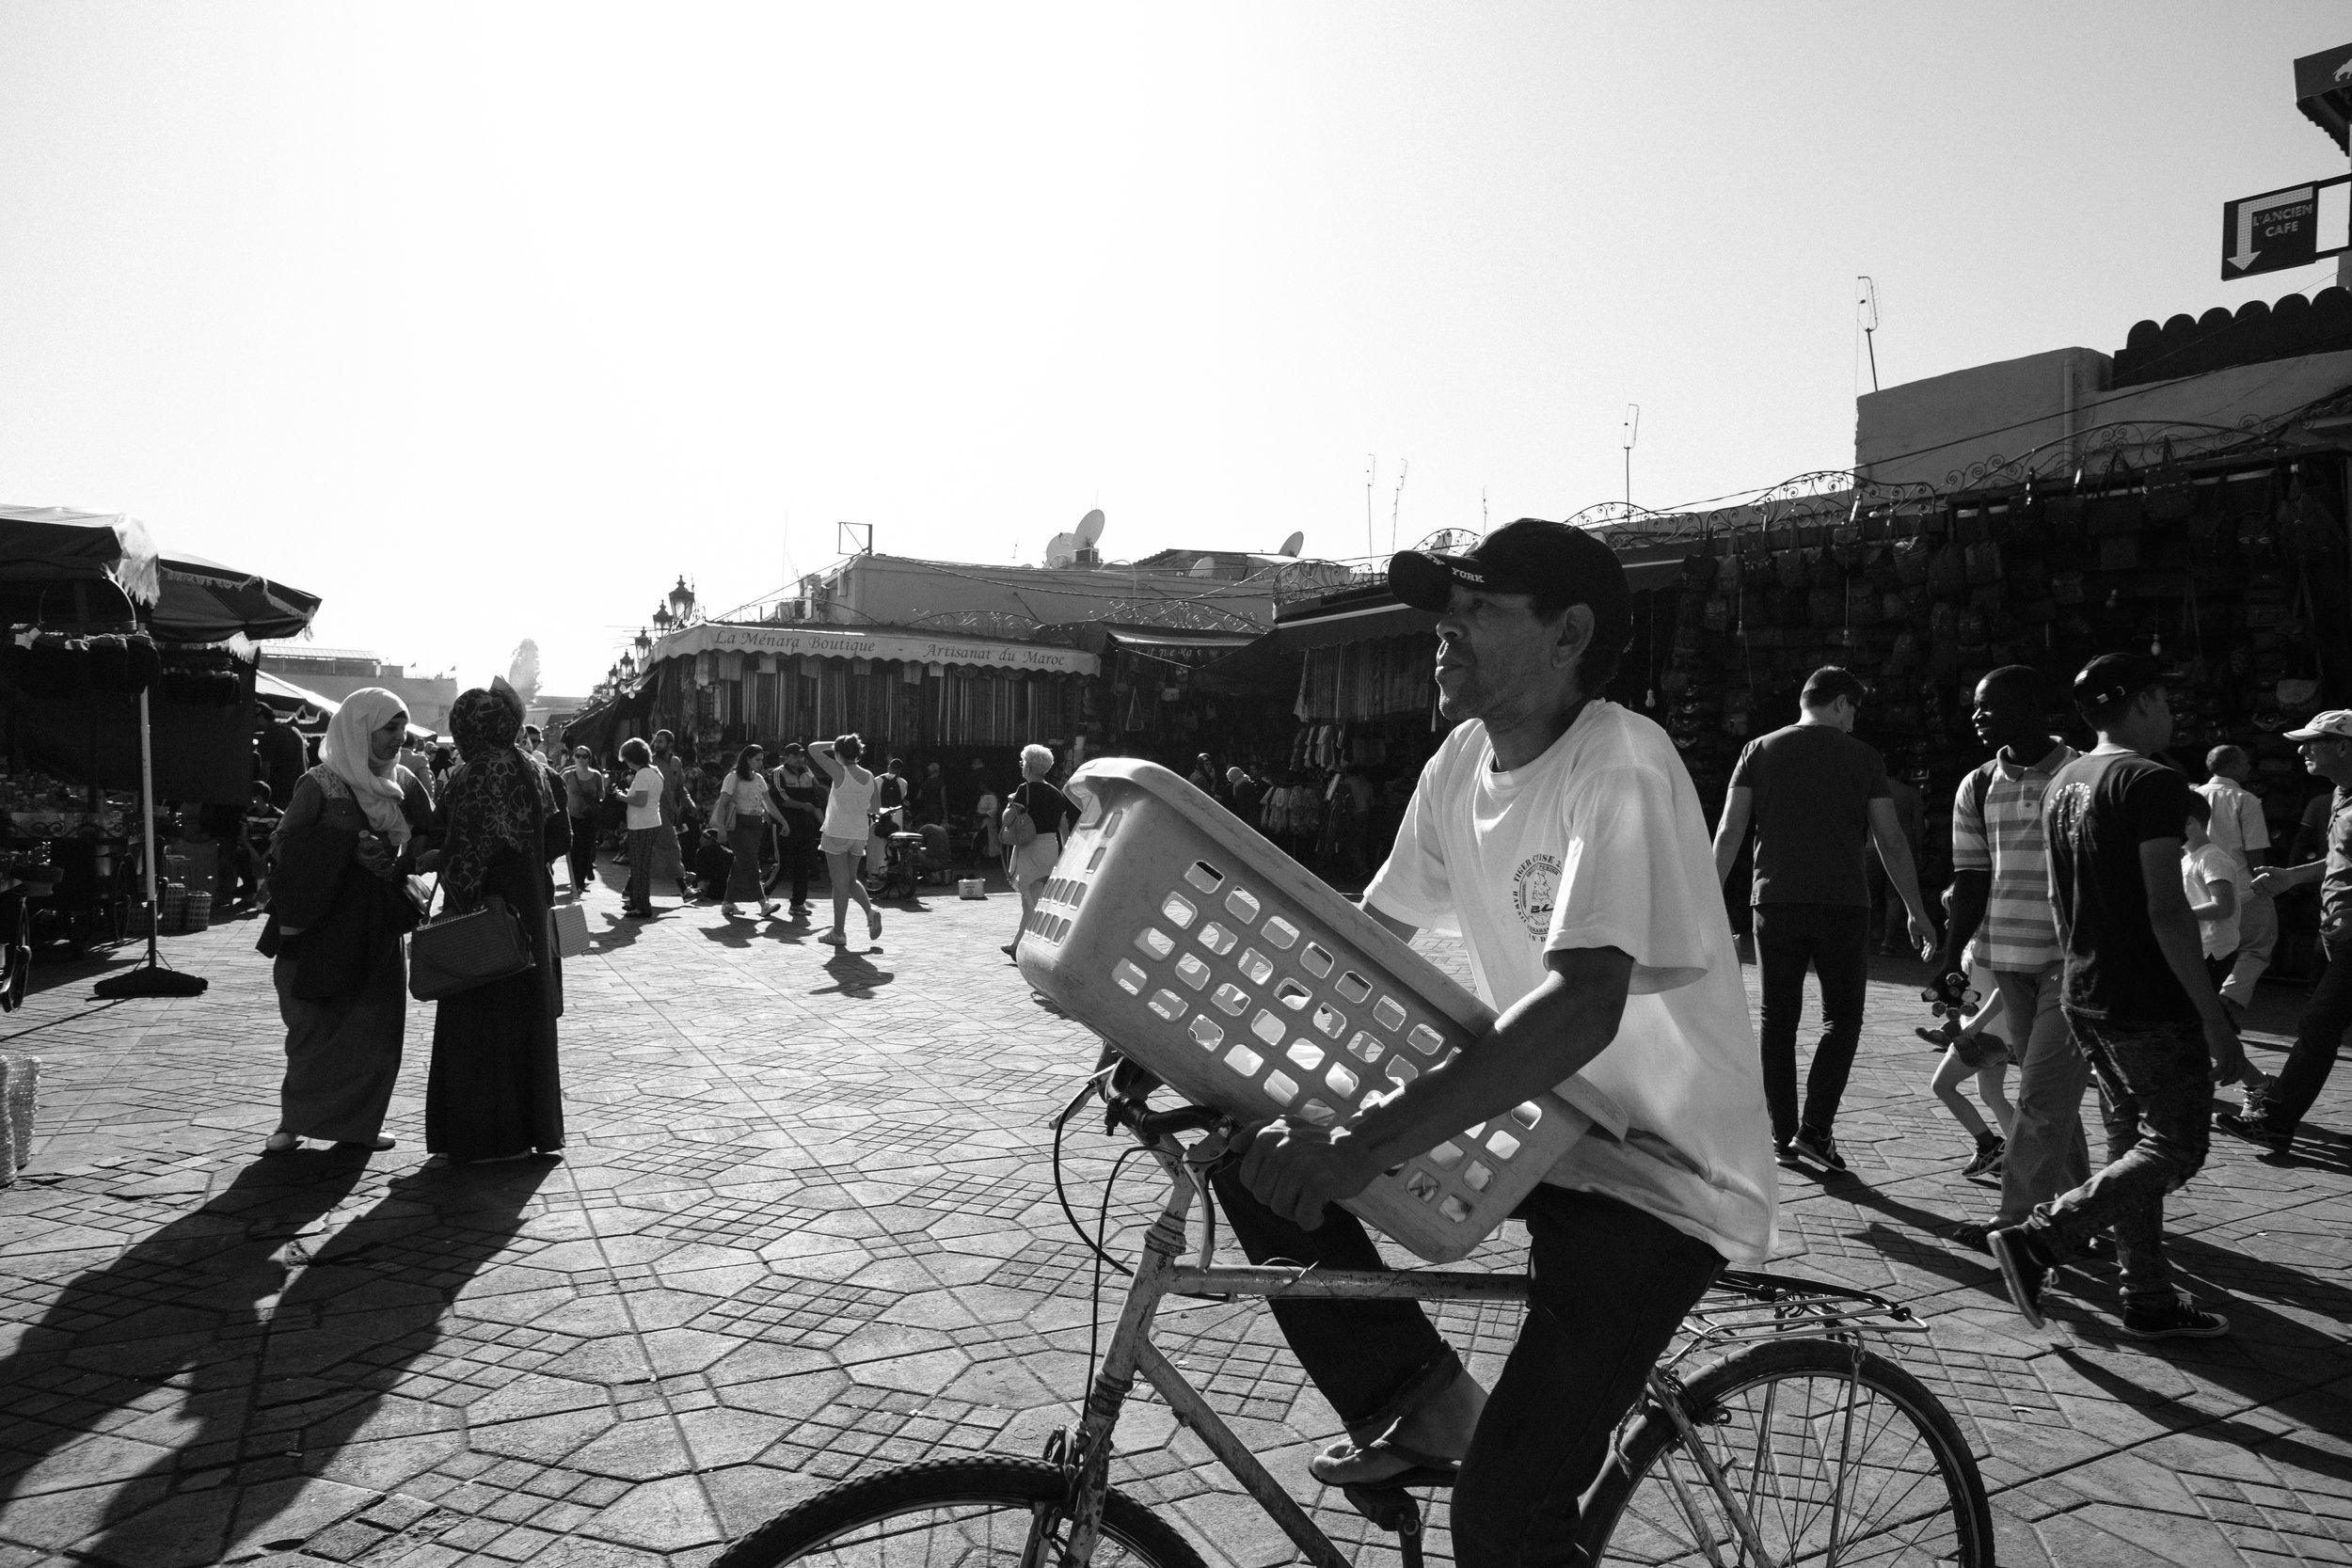 A man cycles at the main square market at Jemaa el-Fna Square in Marrakech Morocco